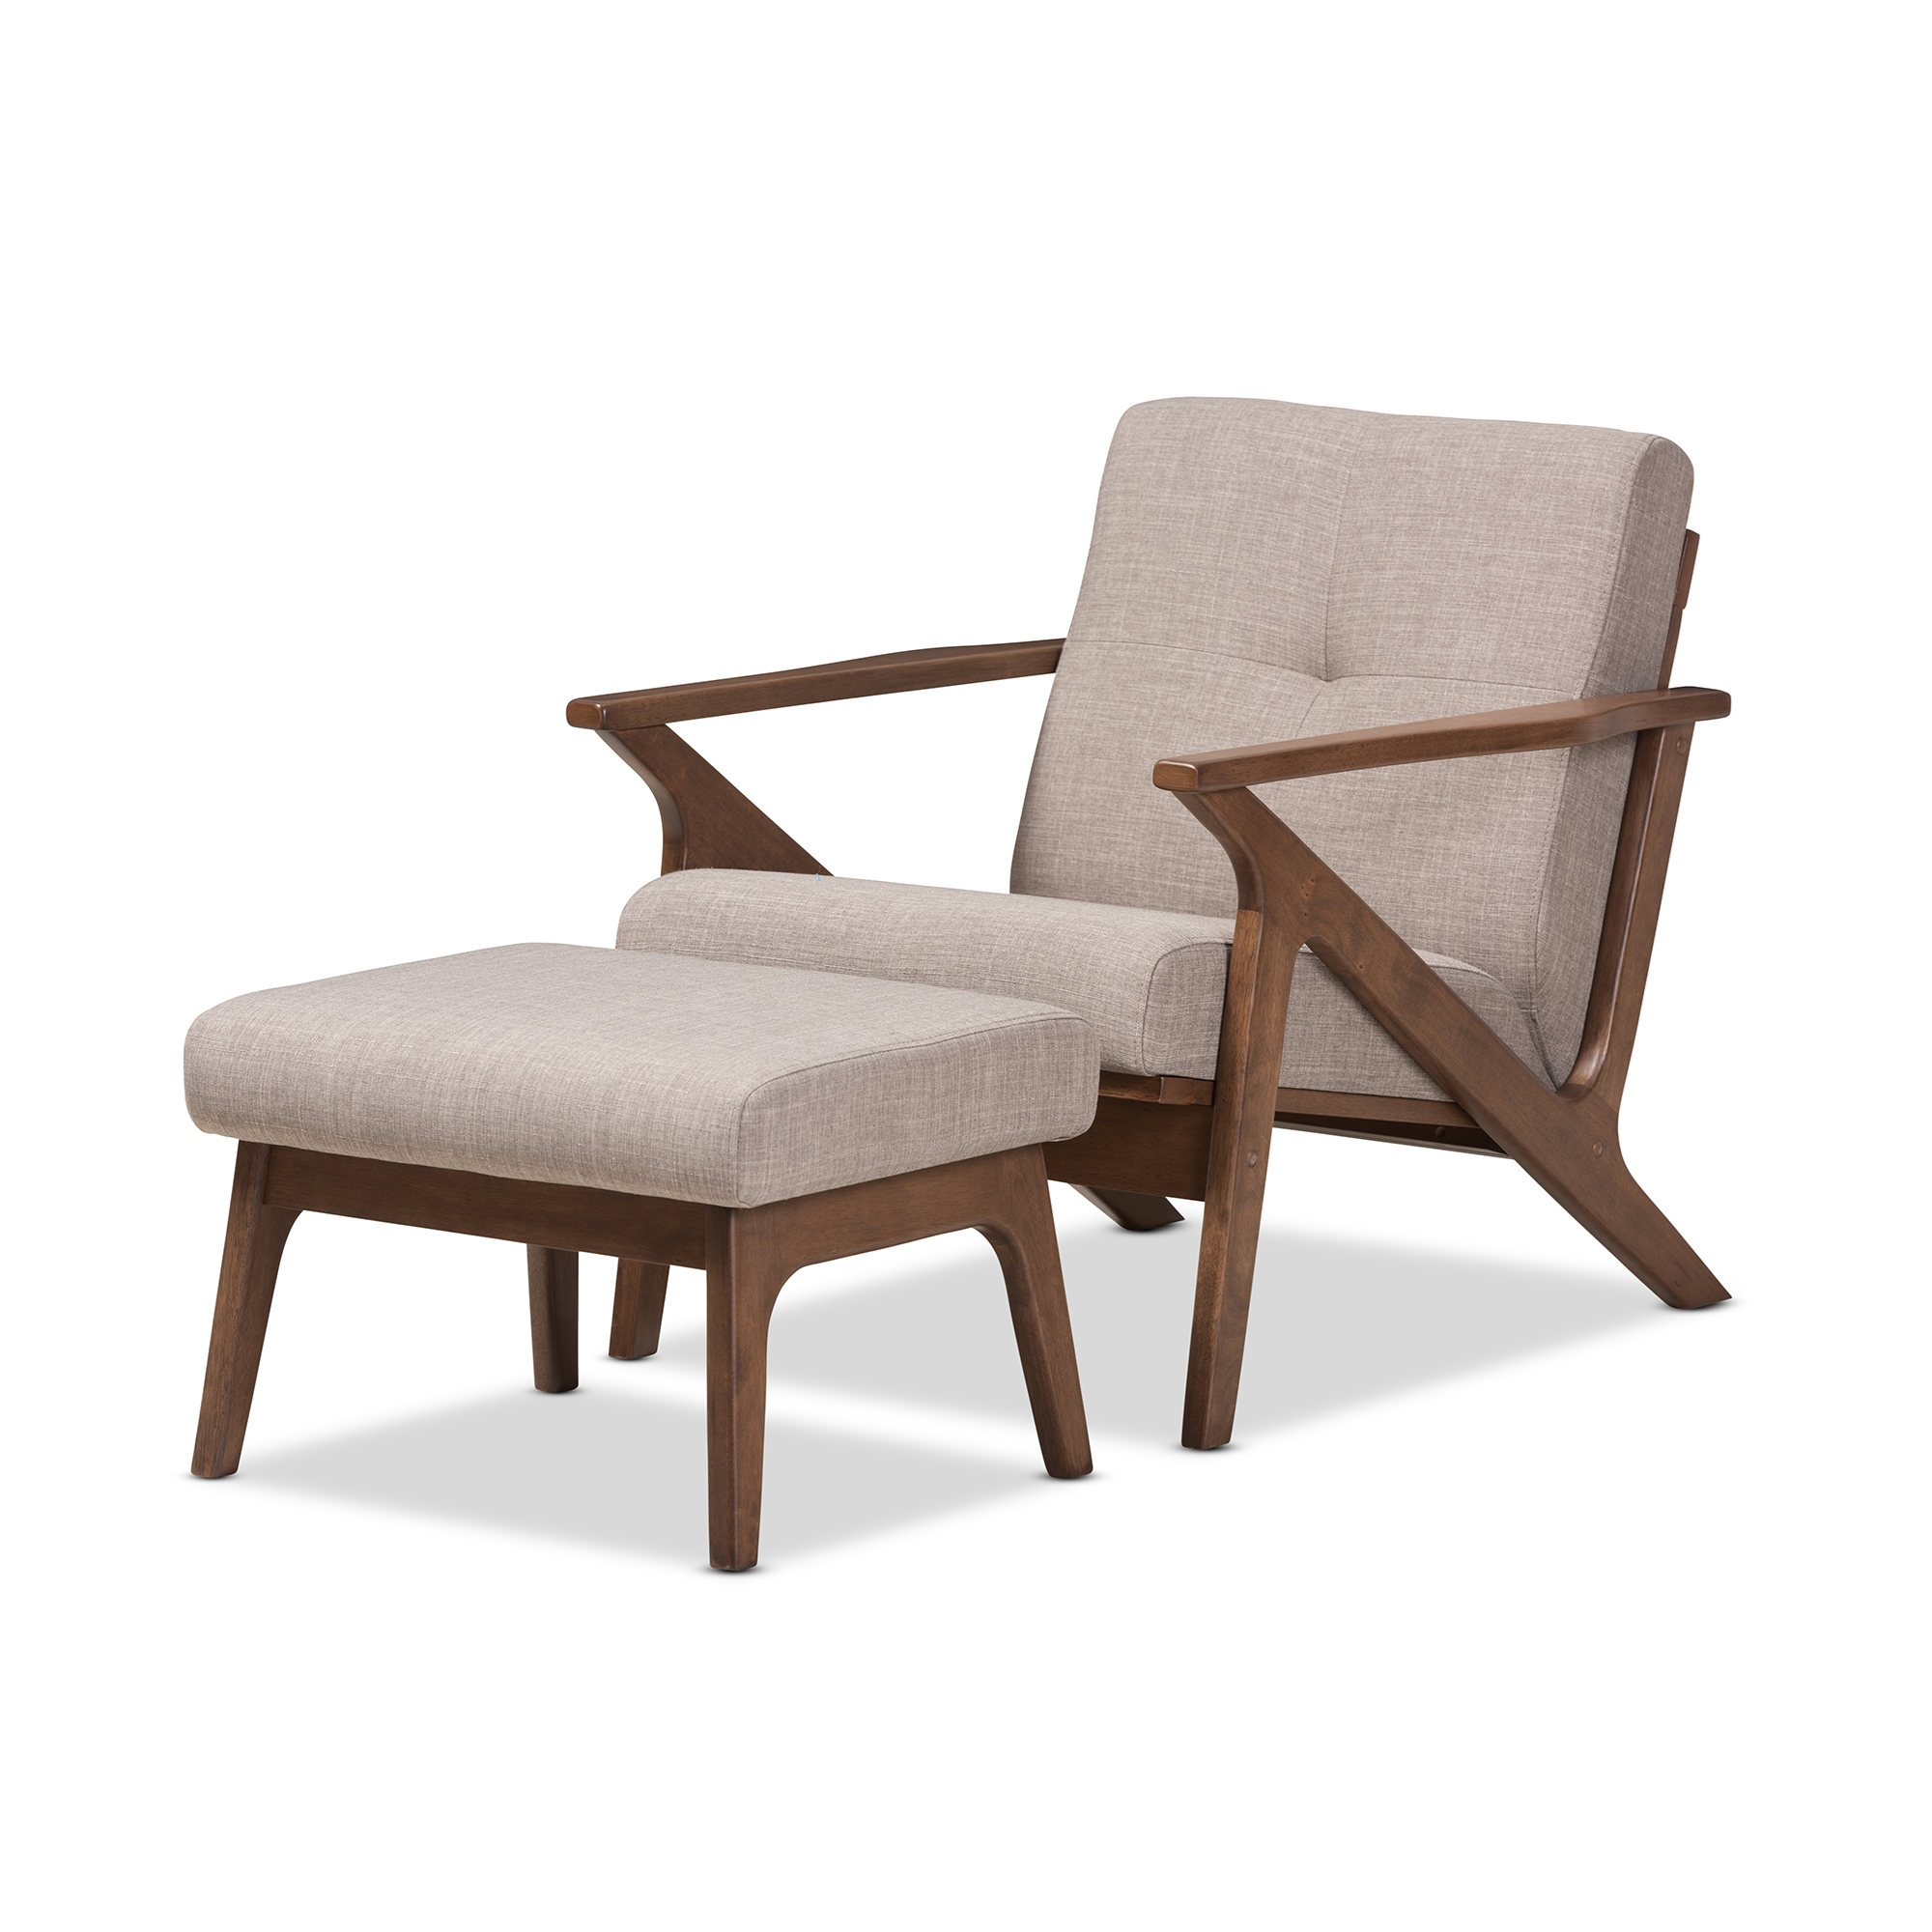 baxton studio bianca midcentury modern walnut wood light grey fabric tufted lounge chair and